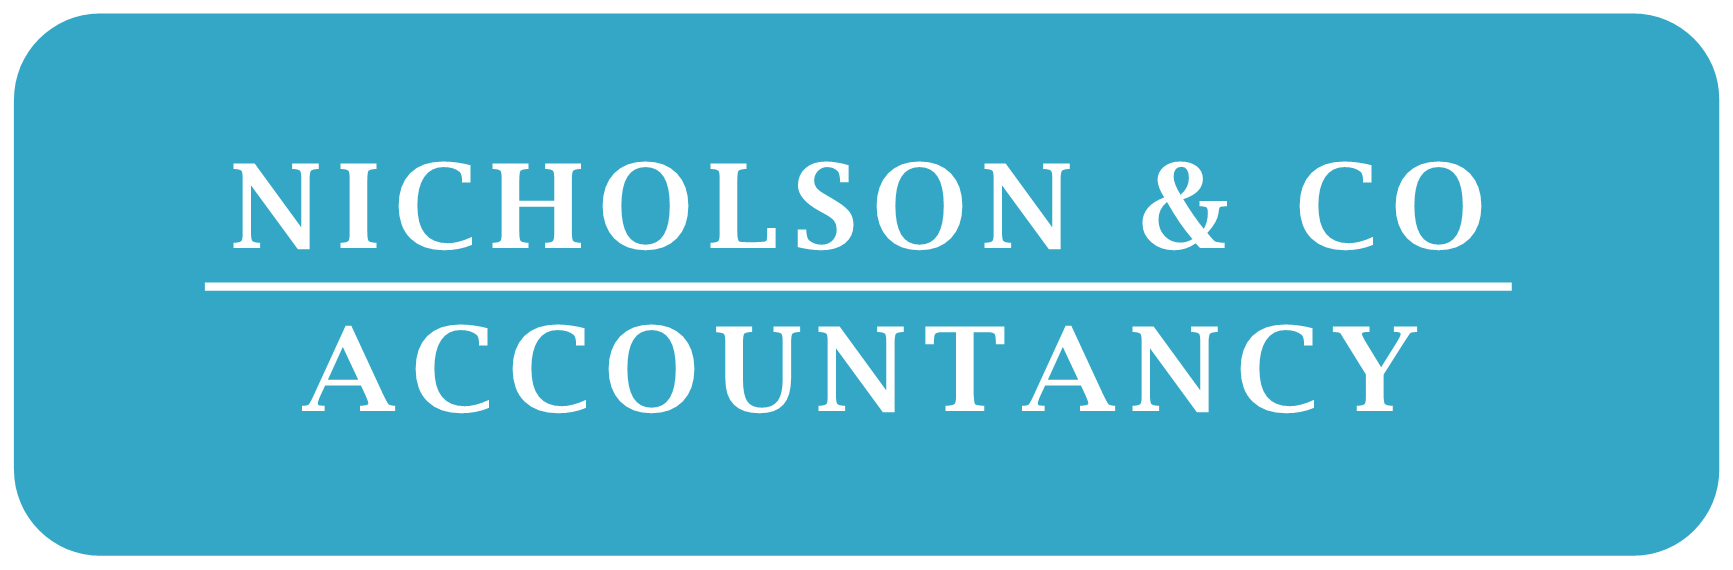 Nicholson & Co Accountancy